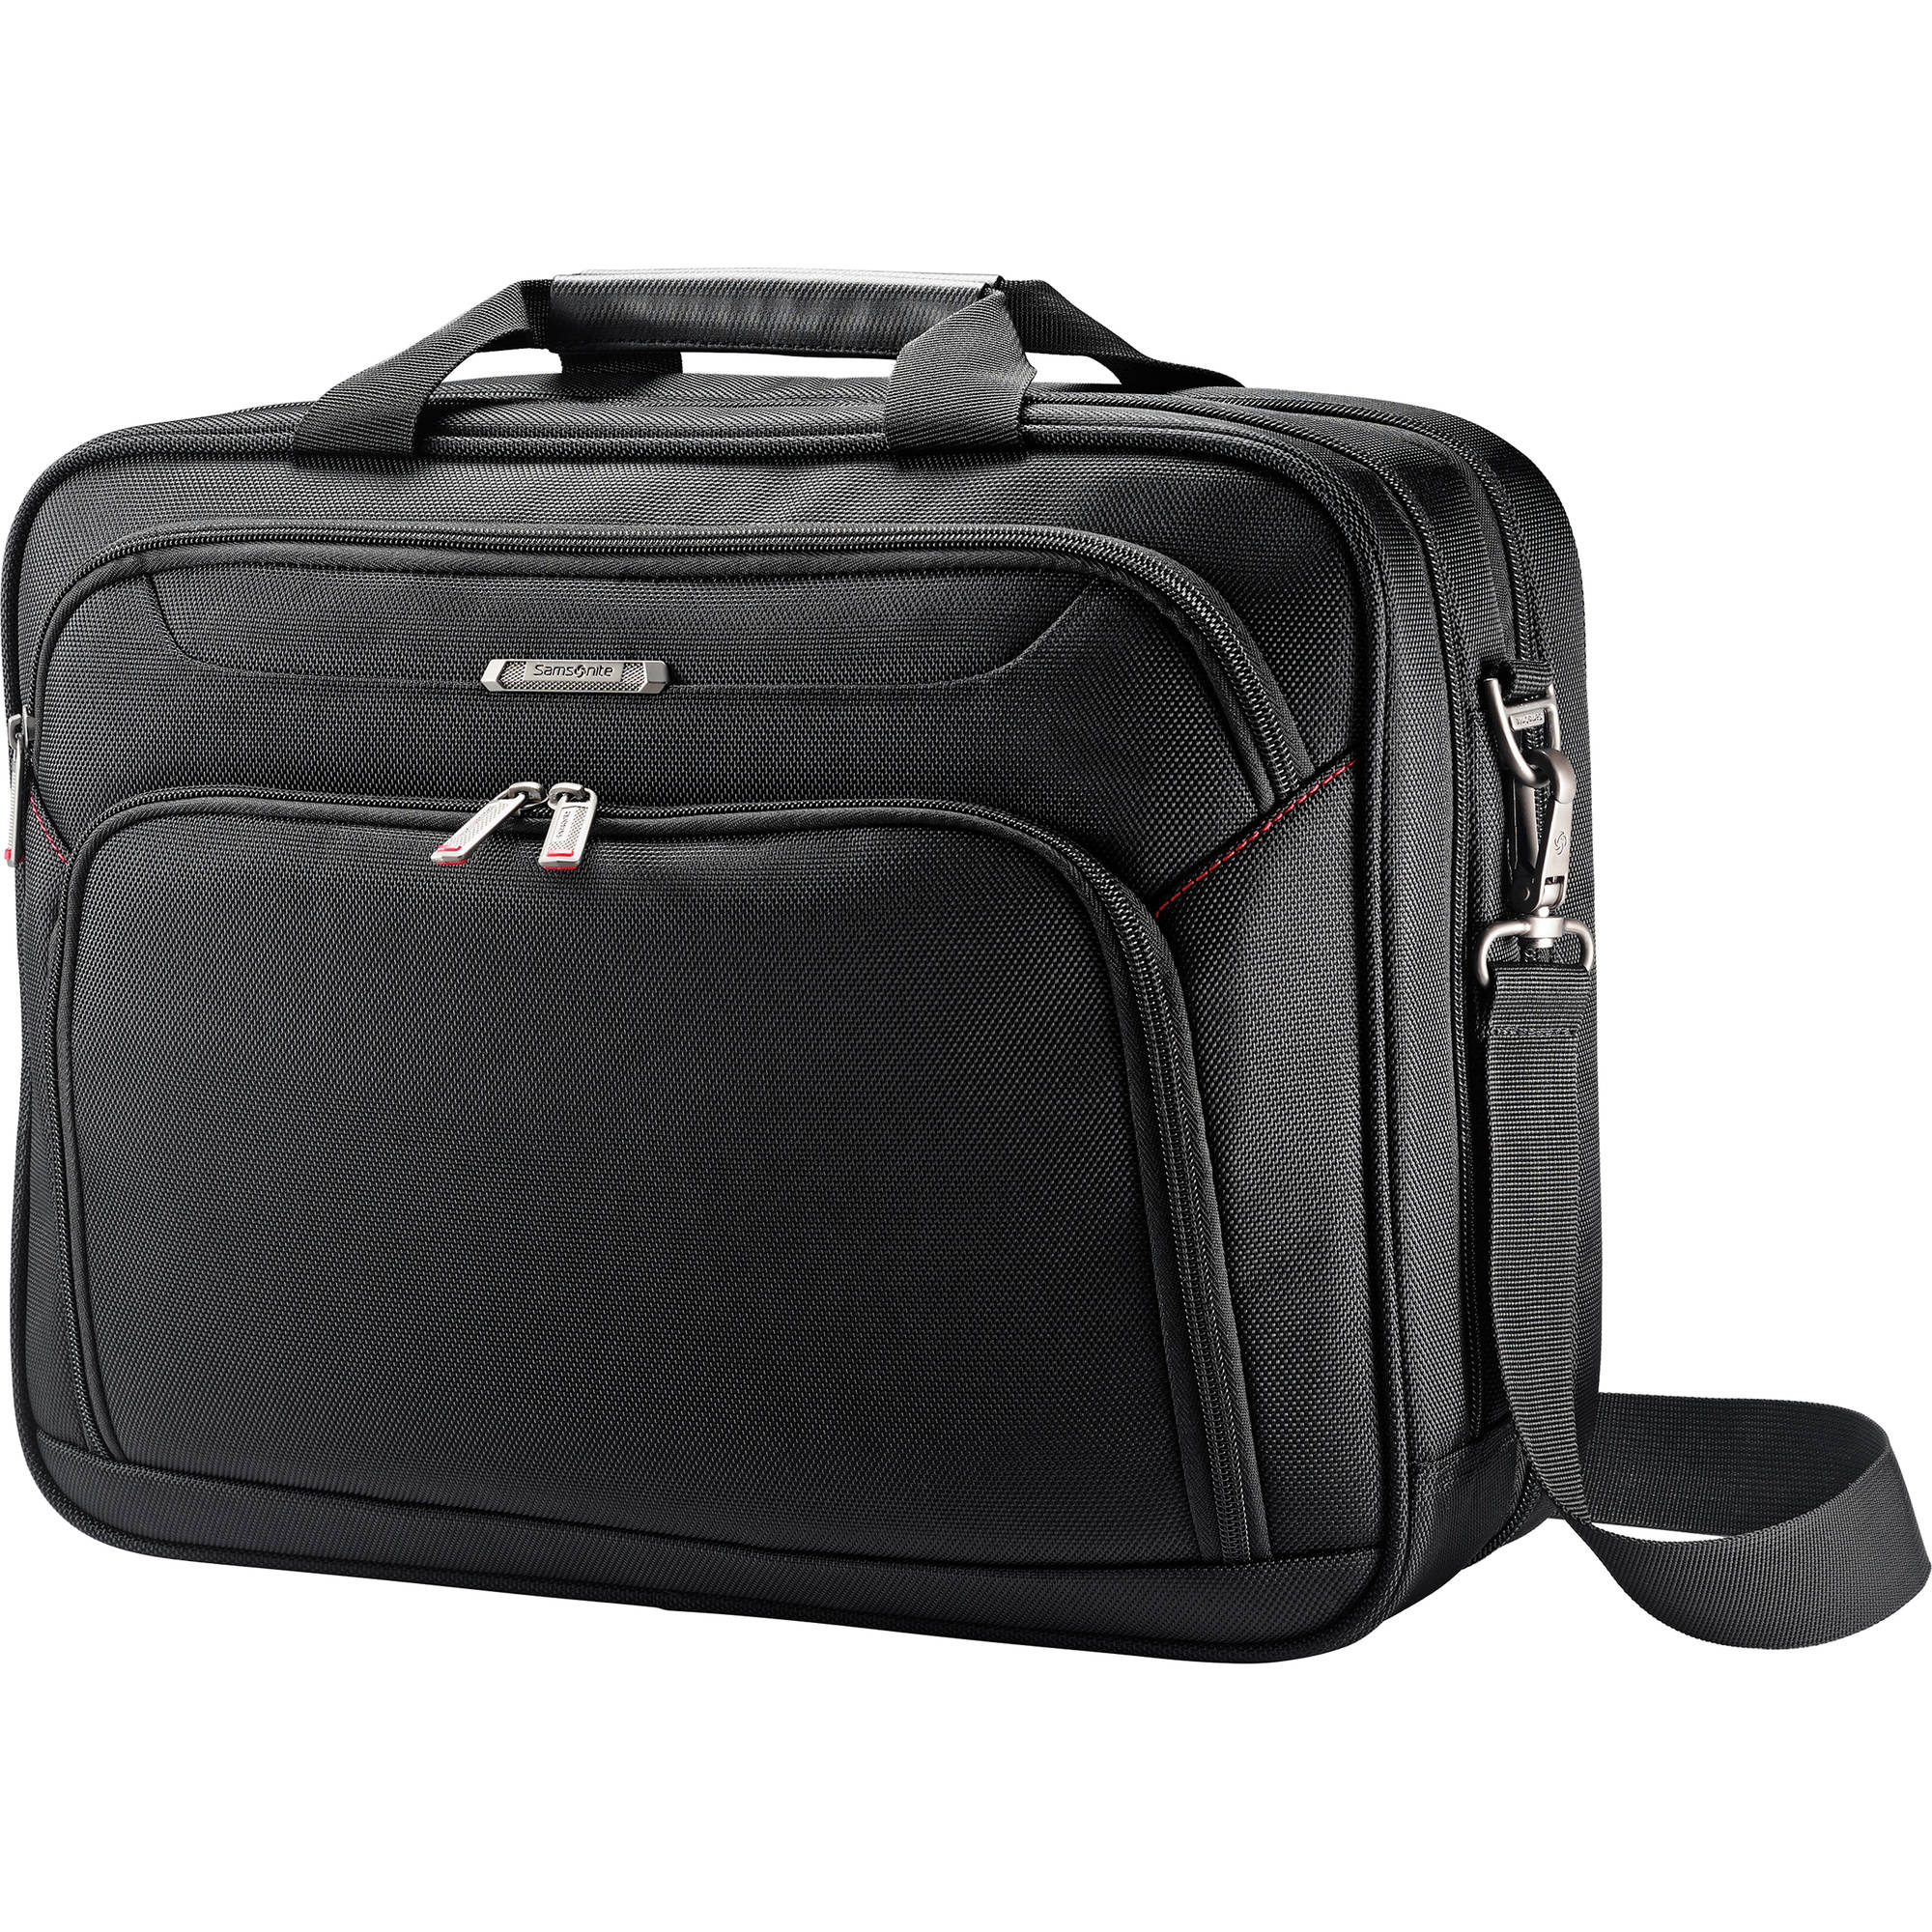 Samsonite Valise 106747//7084 Gris Graphite//Gunmetal - 106747//7083